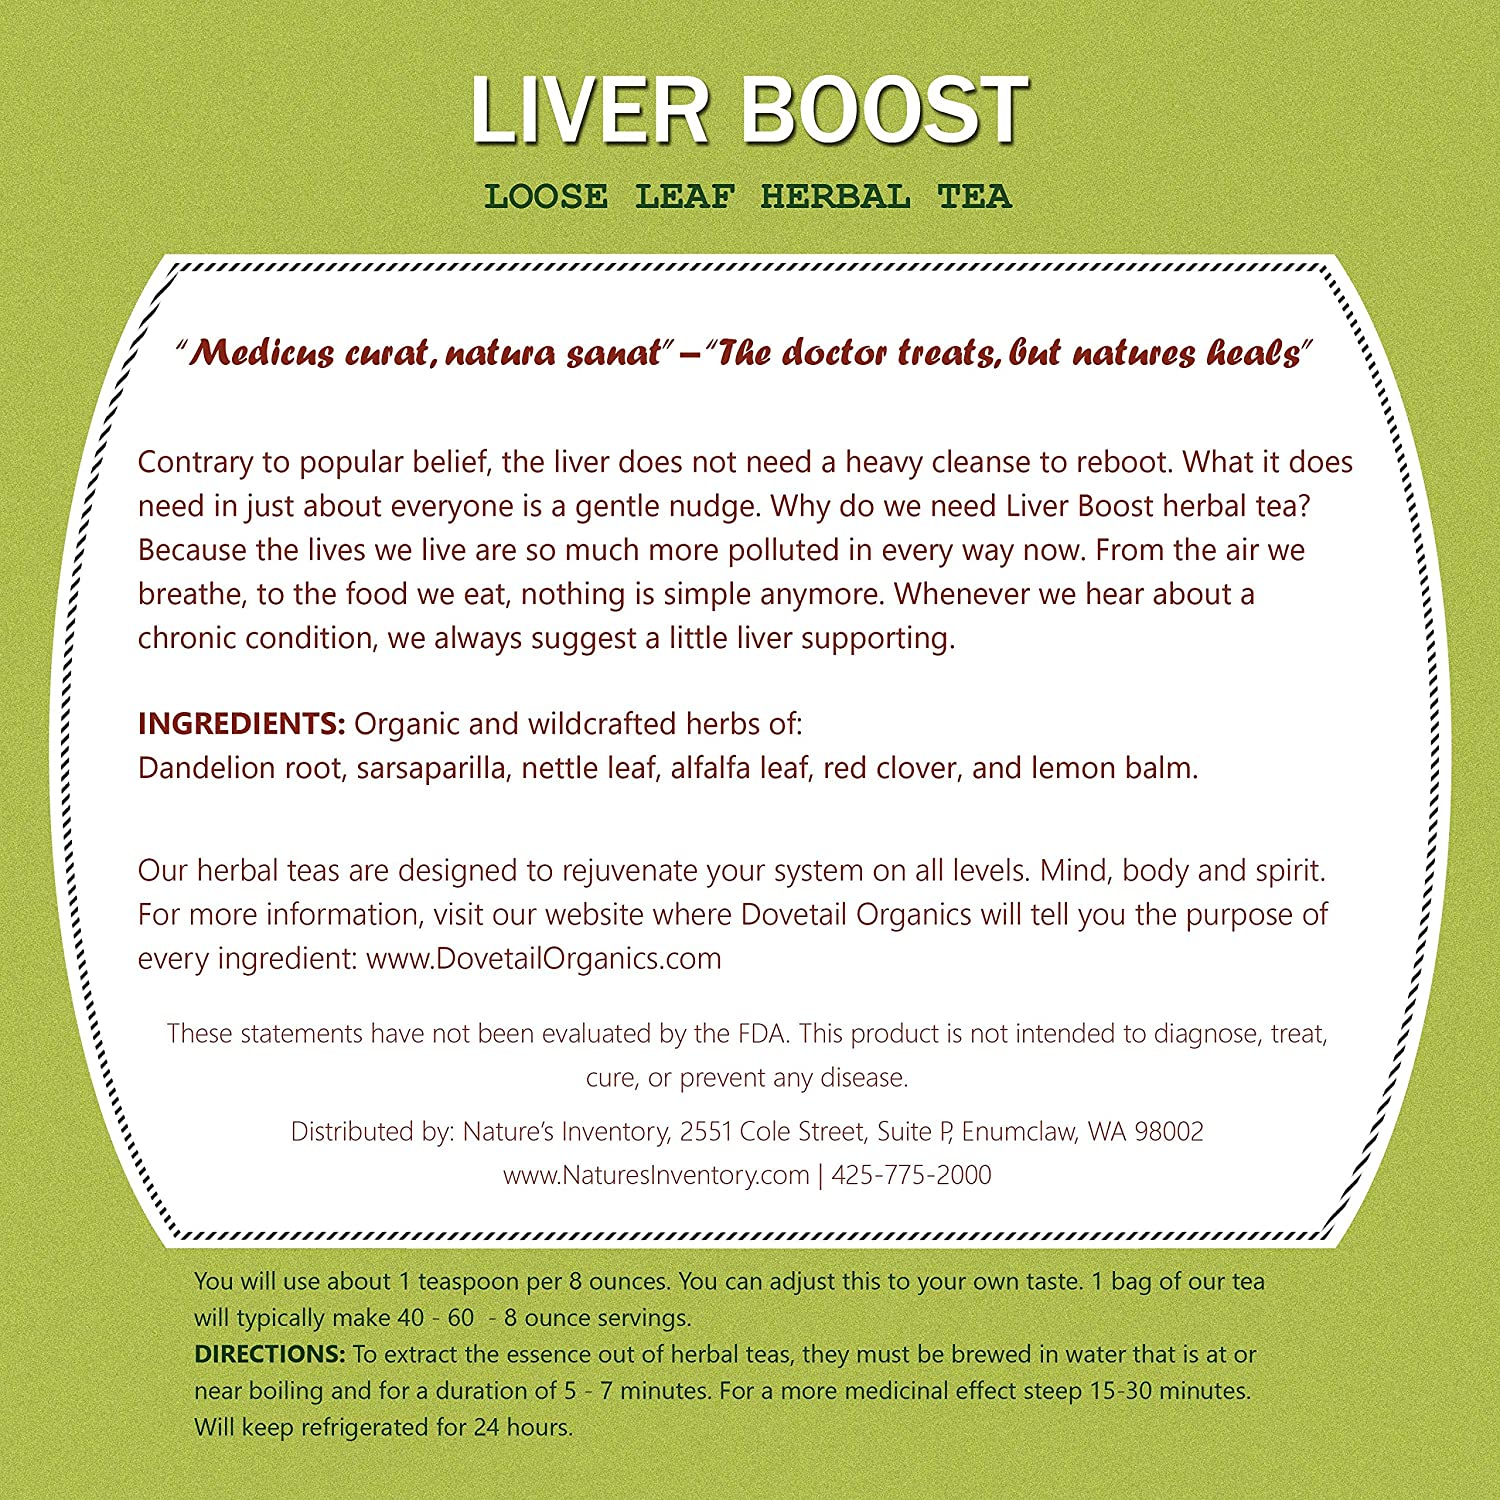 Amazon Natures Inventory Liver Boost Loose Leaf Herbal Tea